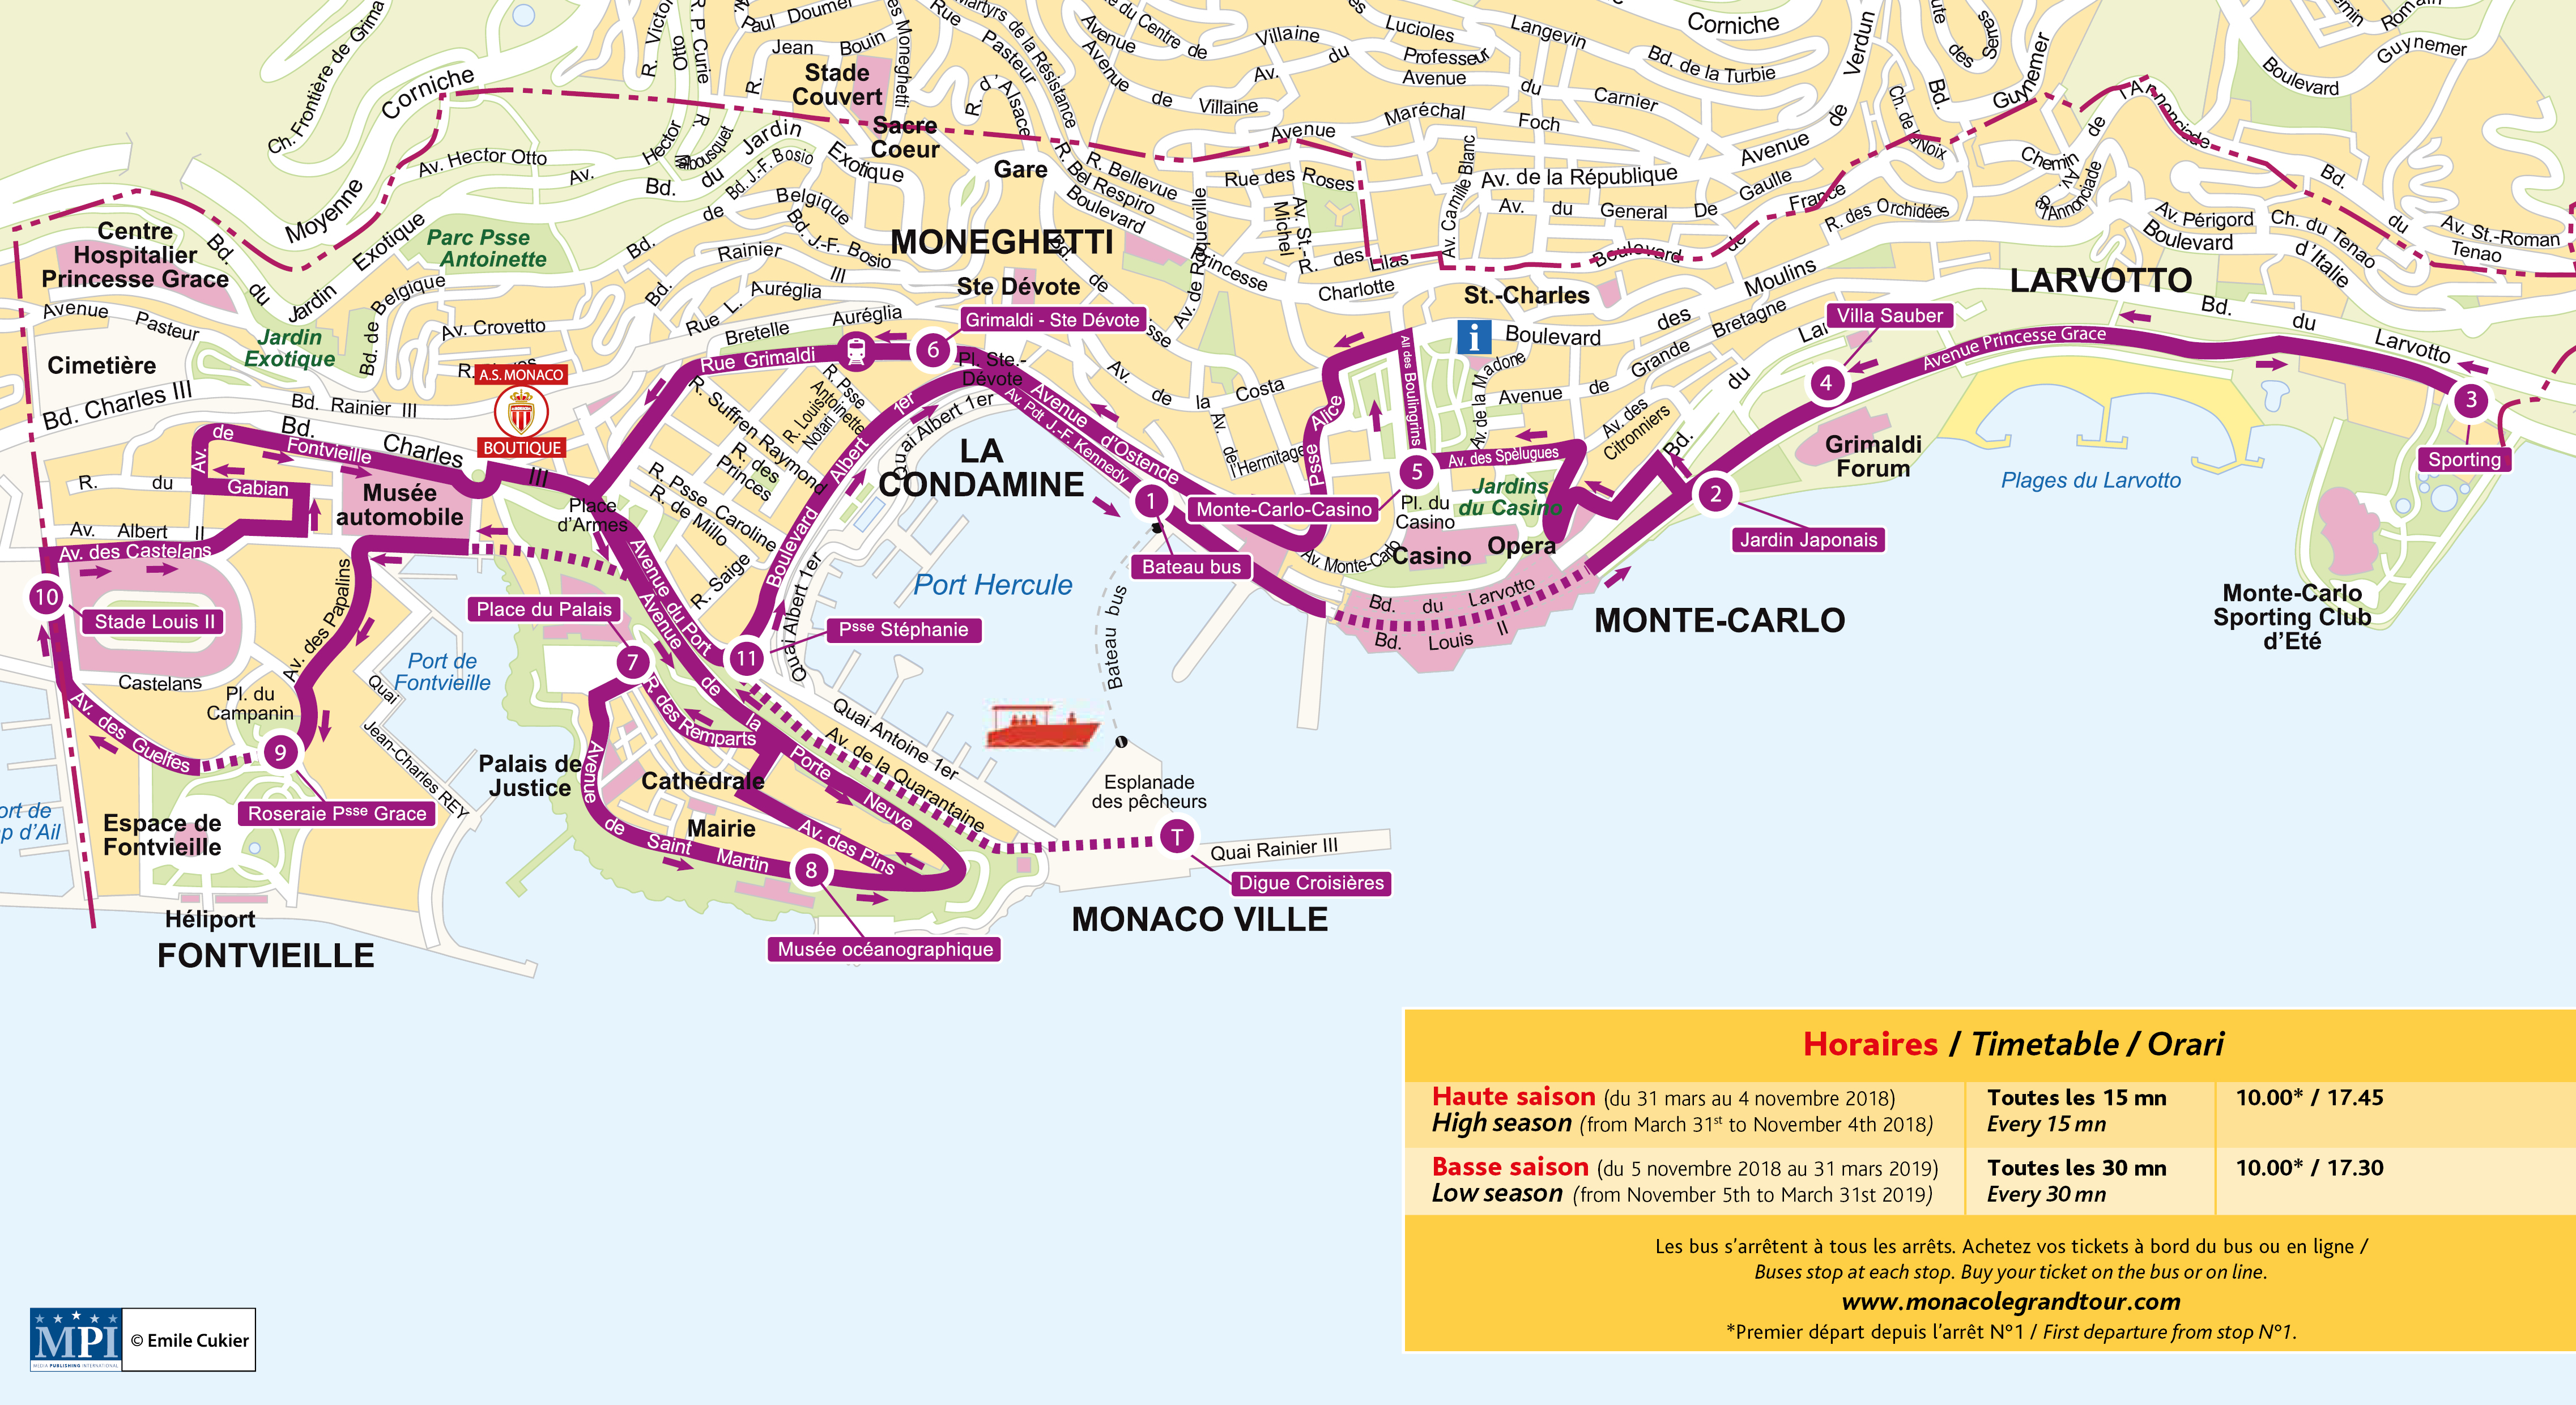 Monaco Hop-On Hop-Off Bus Tour Map